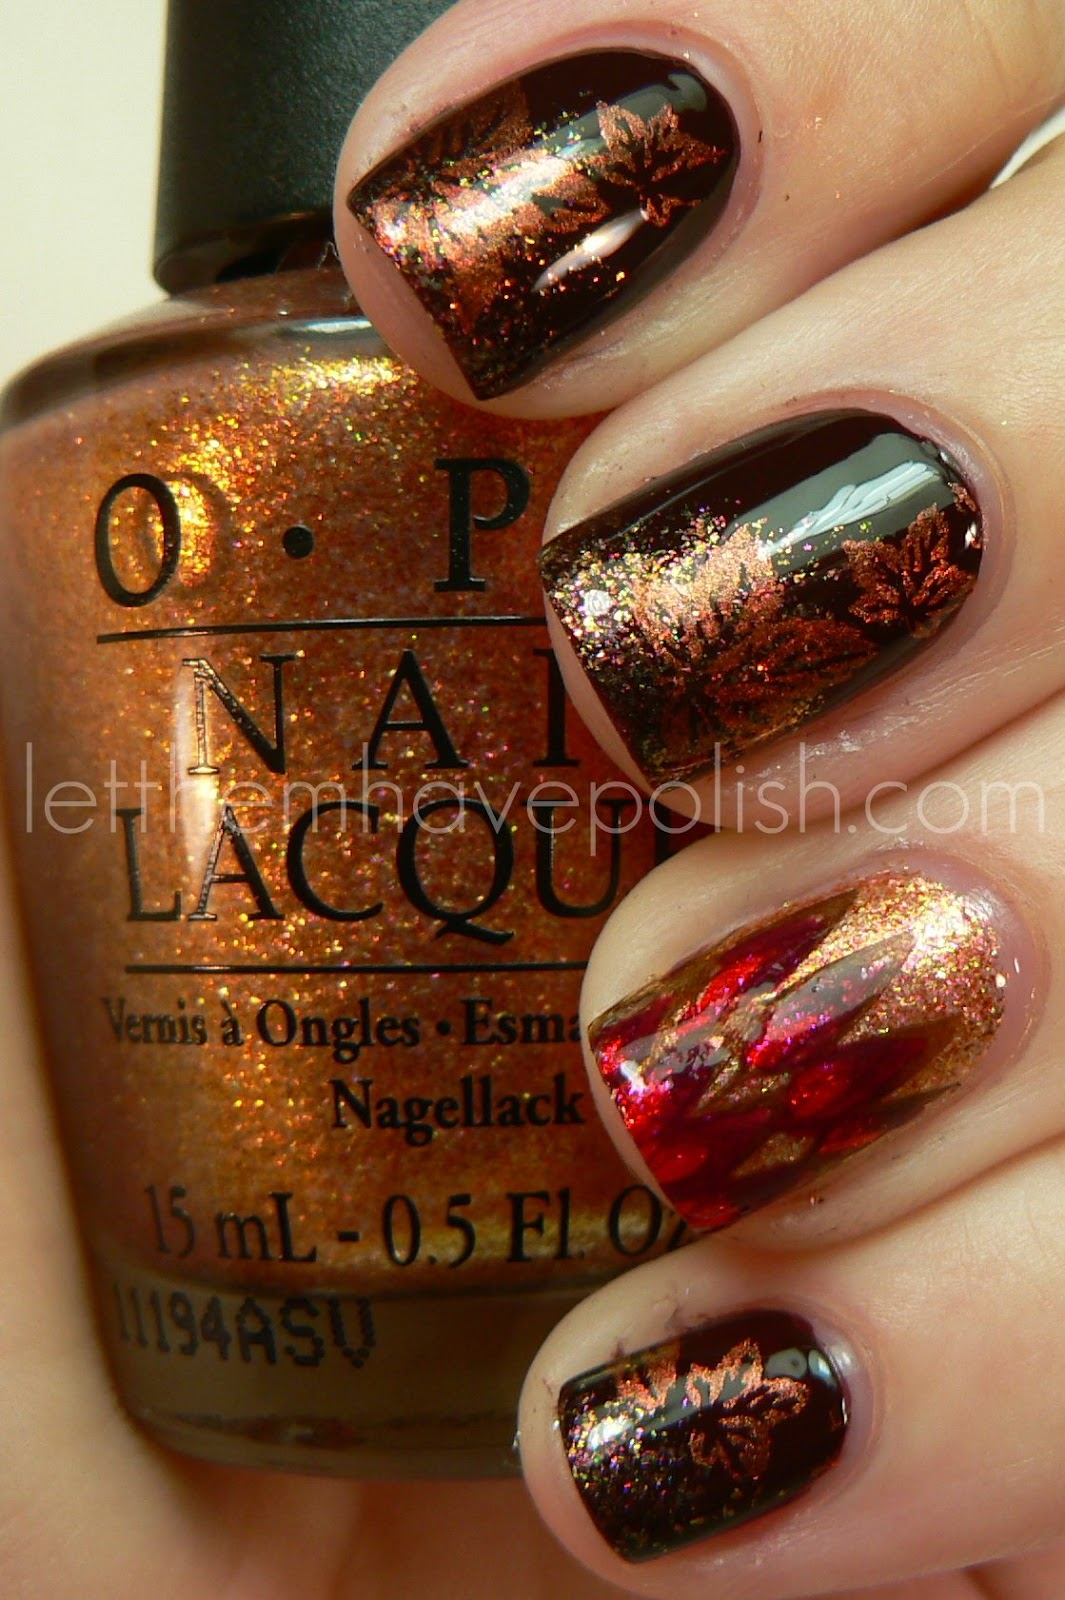 Let Them Have Polish!: Happy Thanksgiving With O.P.I Nail